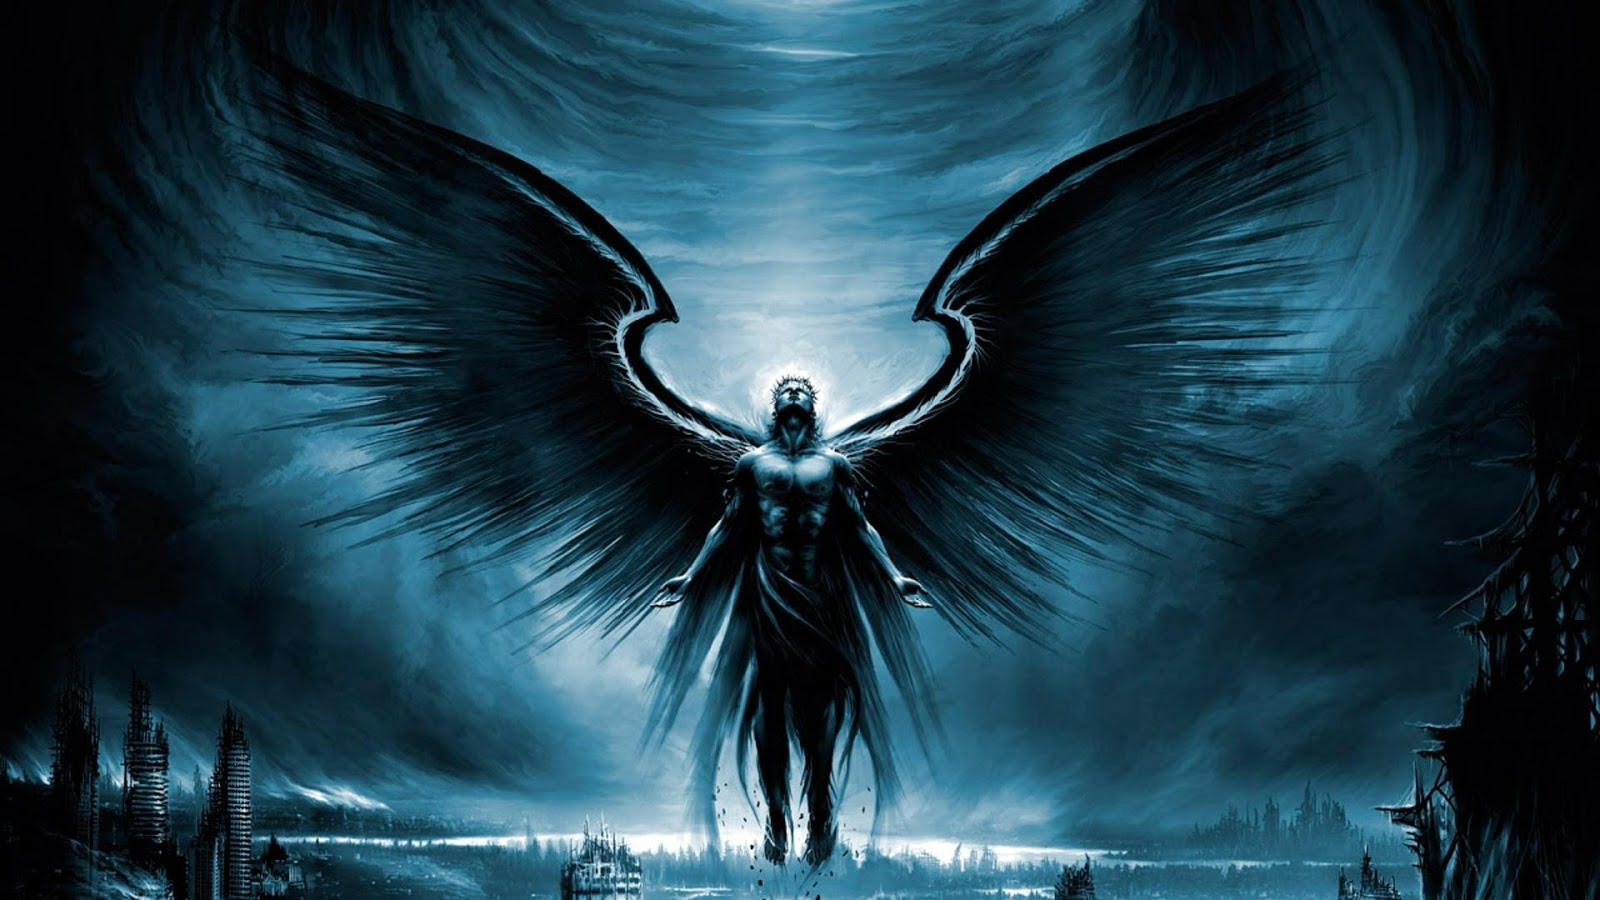 http://2.bp.blogspot.com/-AMnT4eN7yeU/UOT3arZ1zhI/AAAAAAAAAnE/JUP_TcVCxPo/s1600/The-Dark-Angel-Wallpaper-HD.jpg